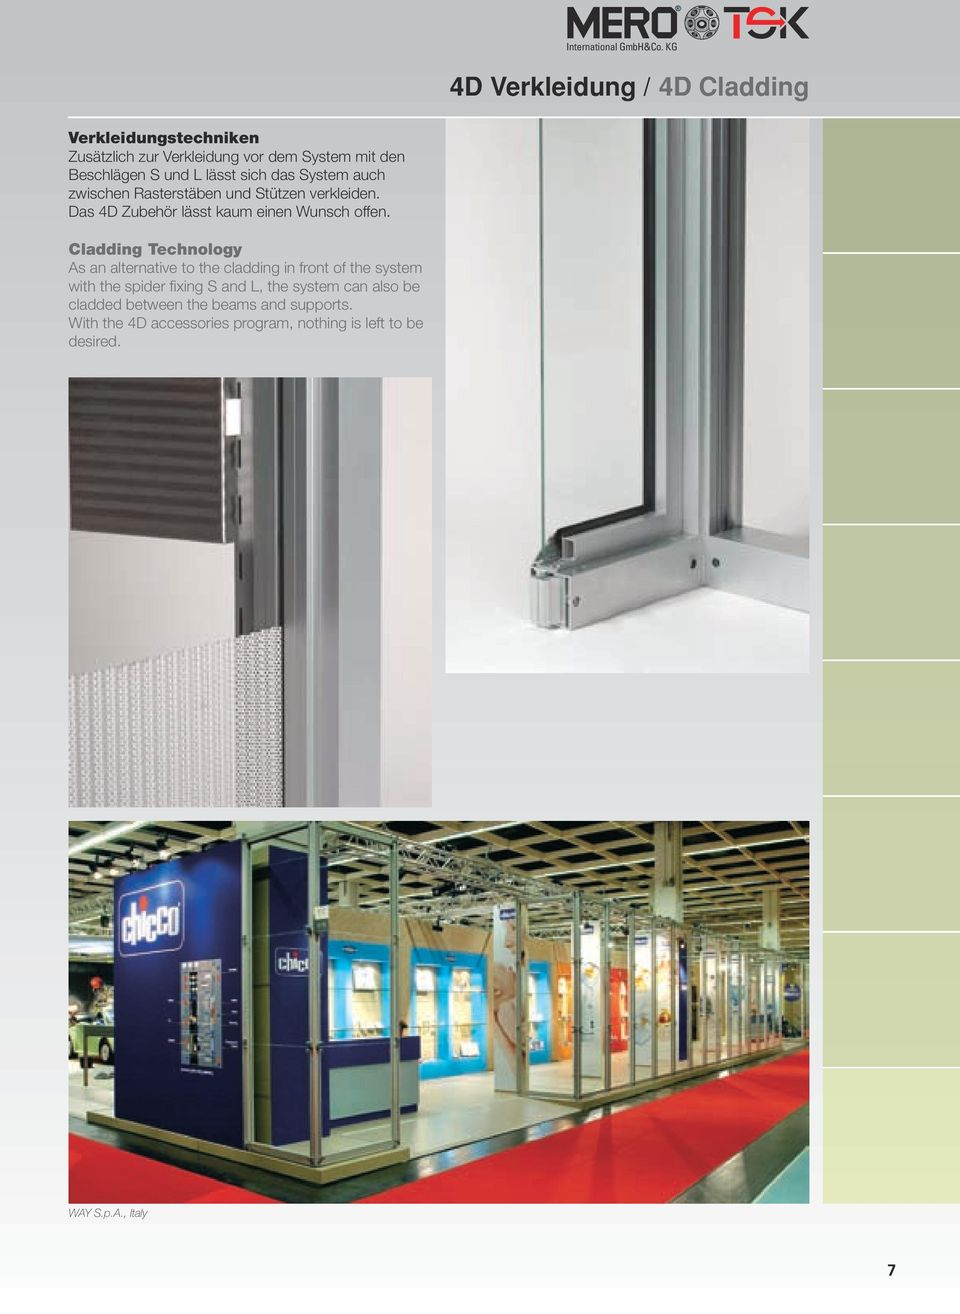 Cladding Technology As an alternative to the cladding in front of the system with the spider fixing S and L, the system